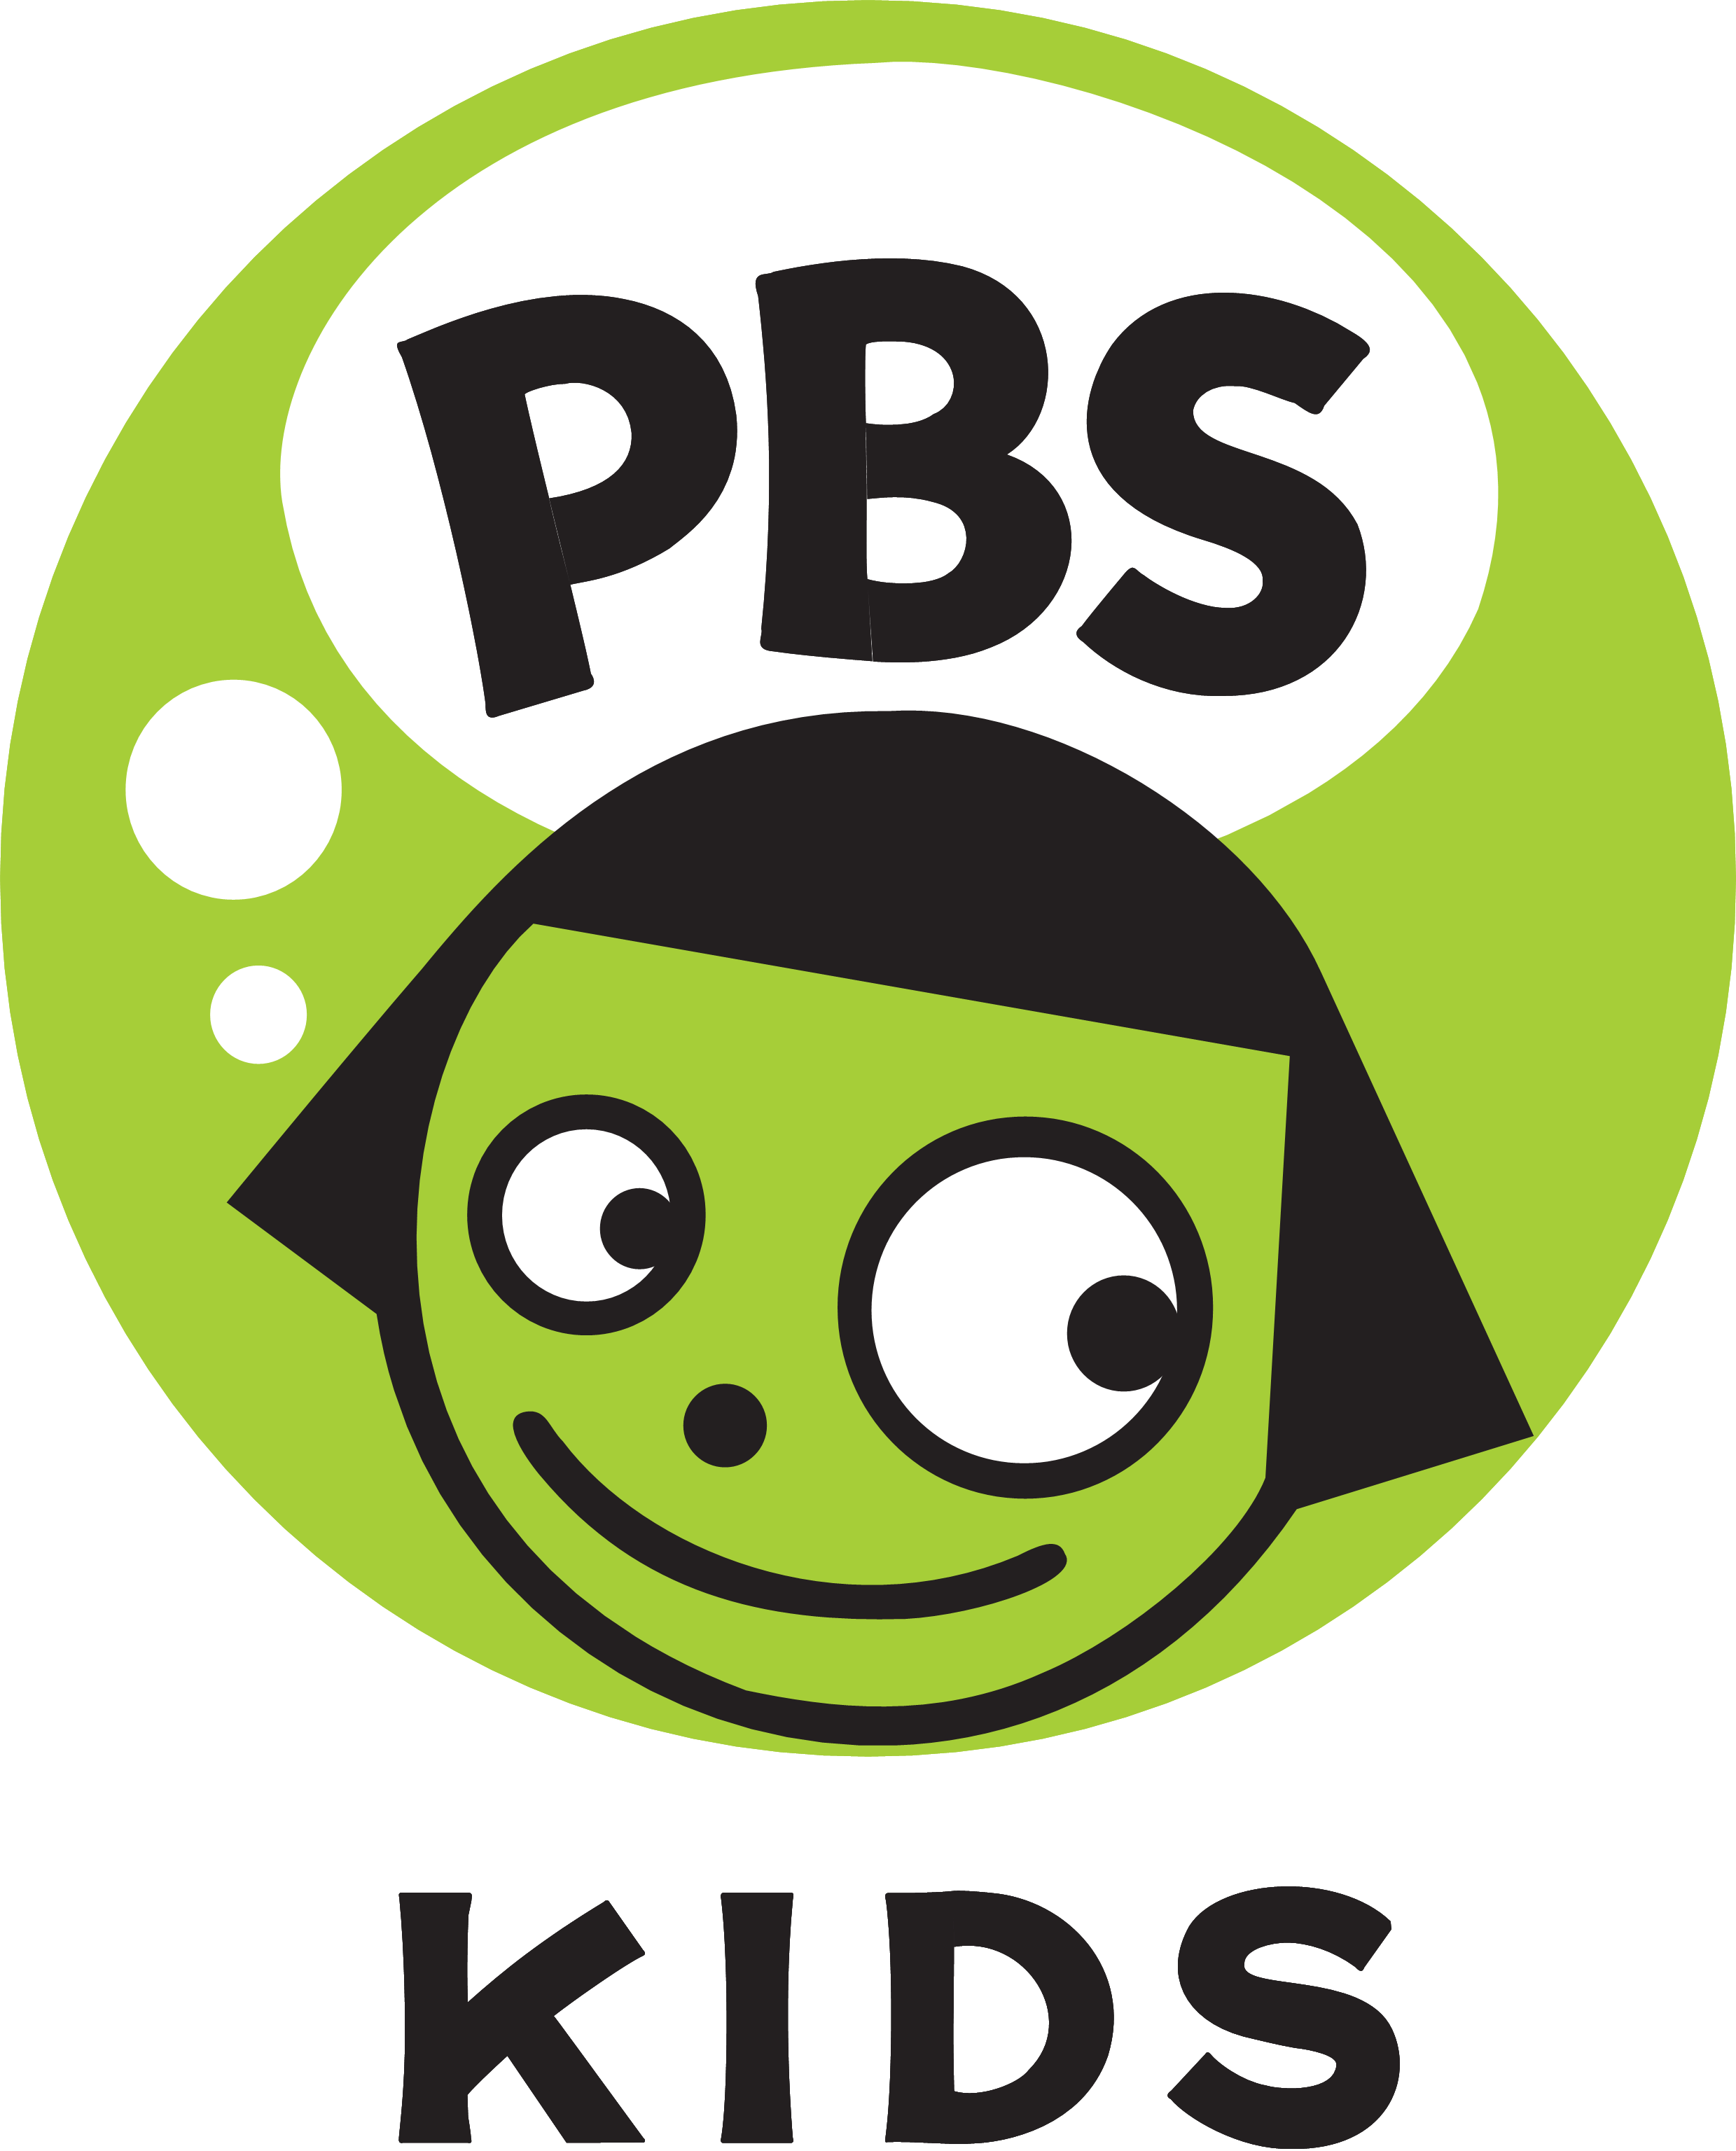 image pbs kids dotpng logopedia the logo and